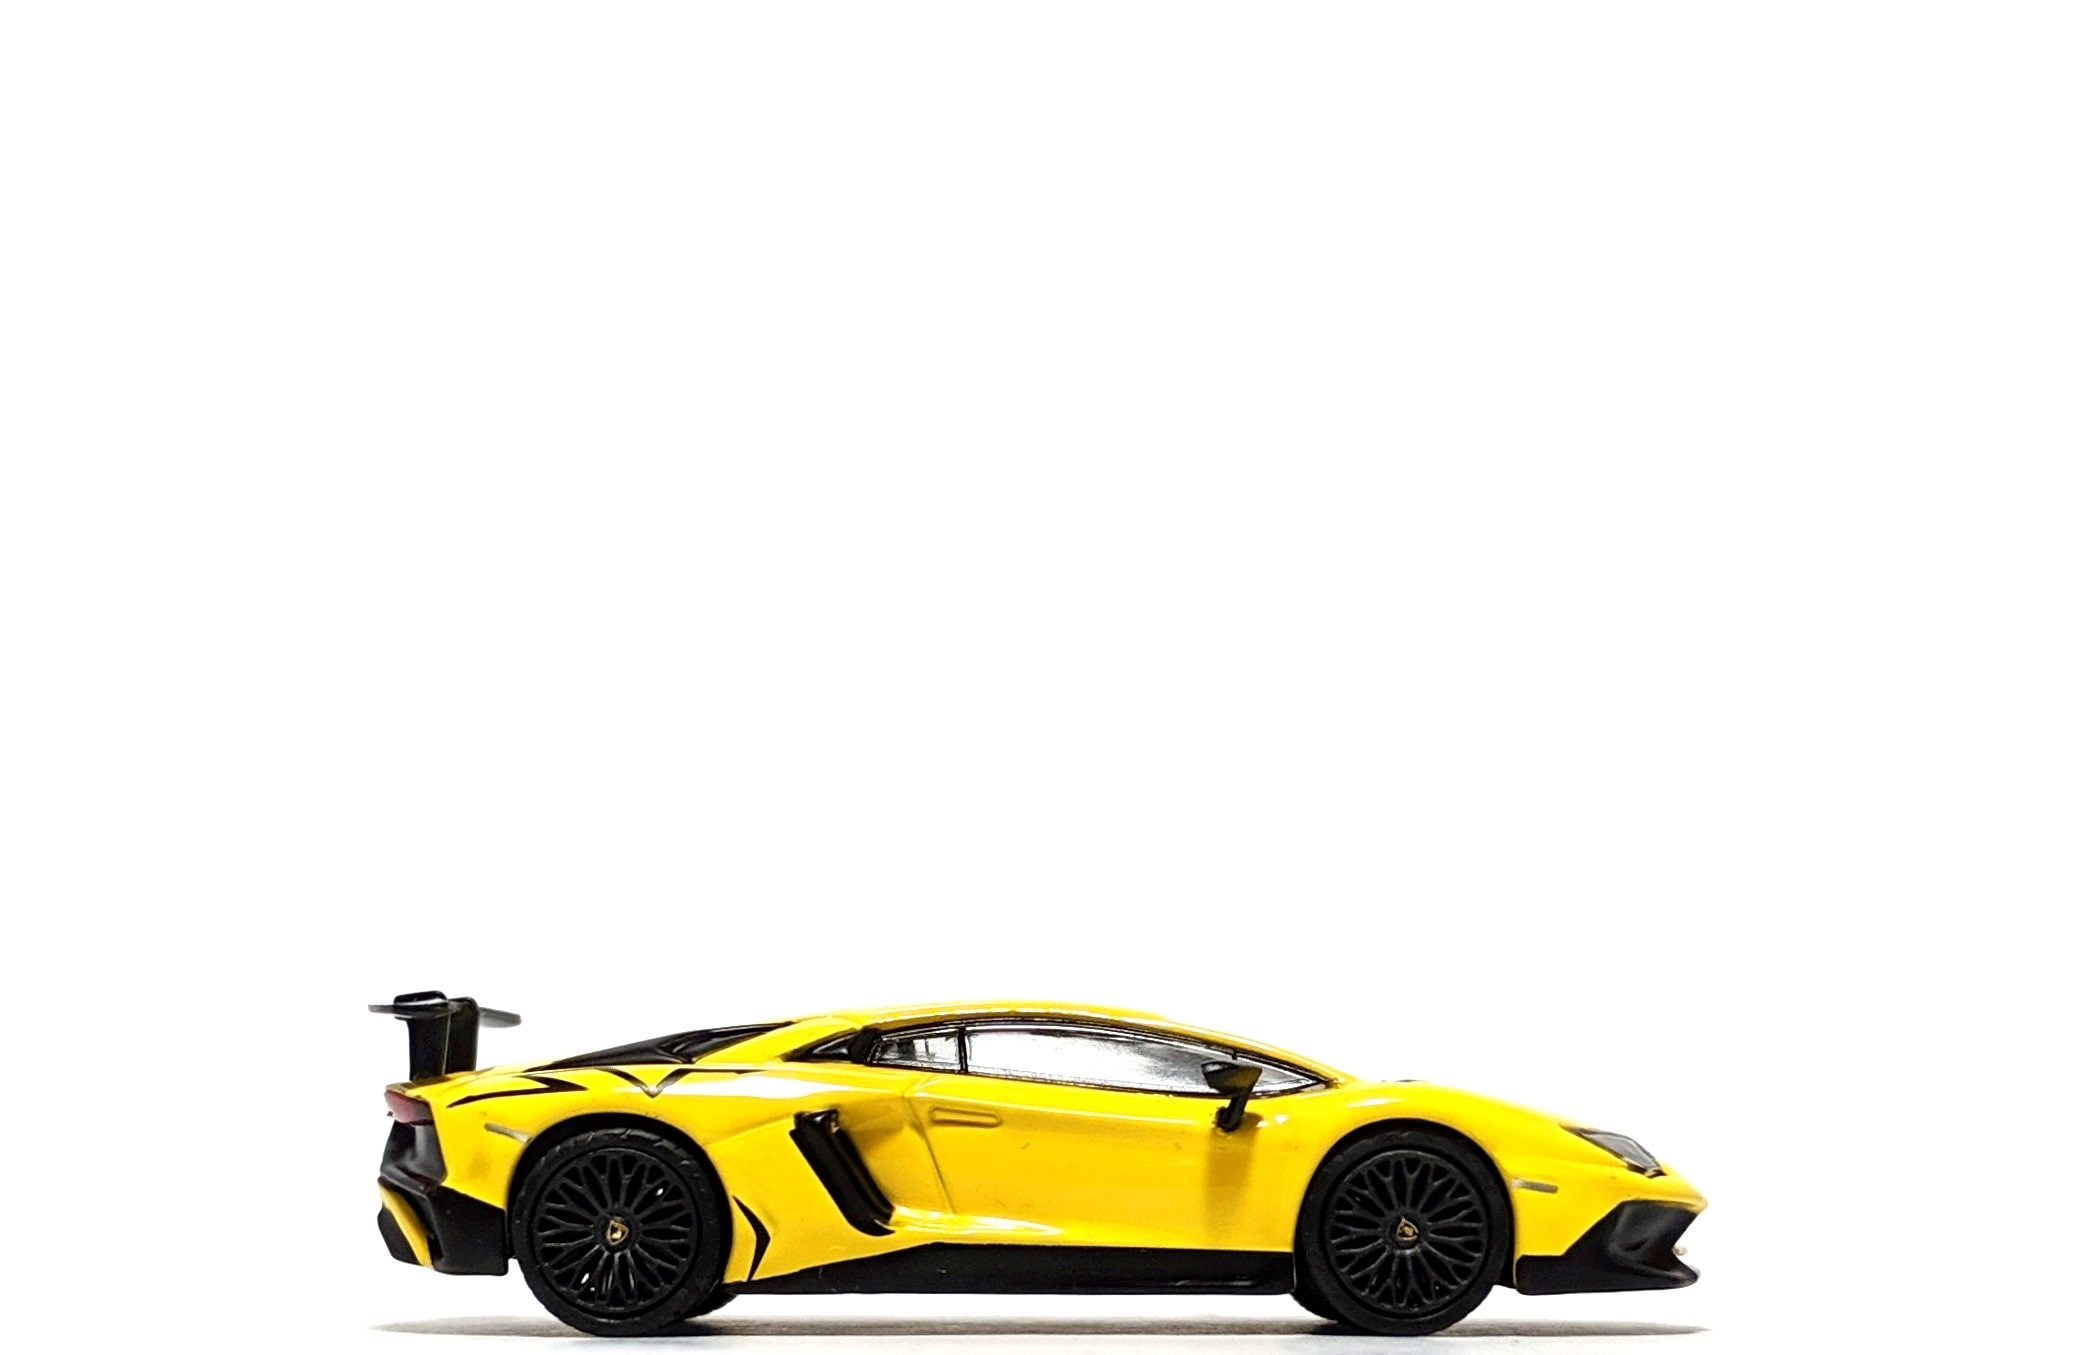 Lamborghini Aventador SV in Giallo Orion, by Tarmac Works (Global64)